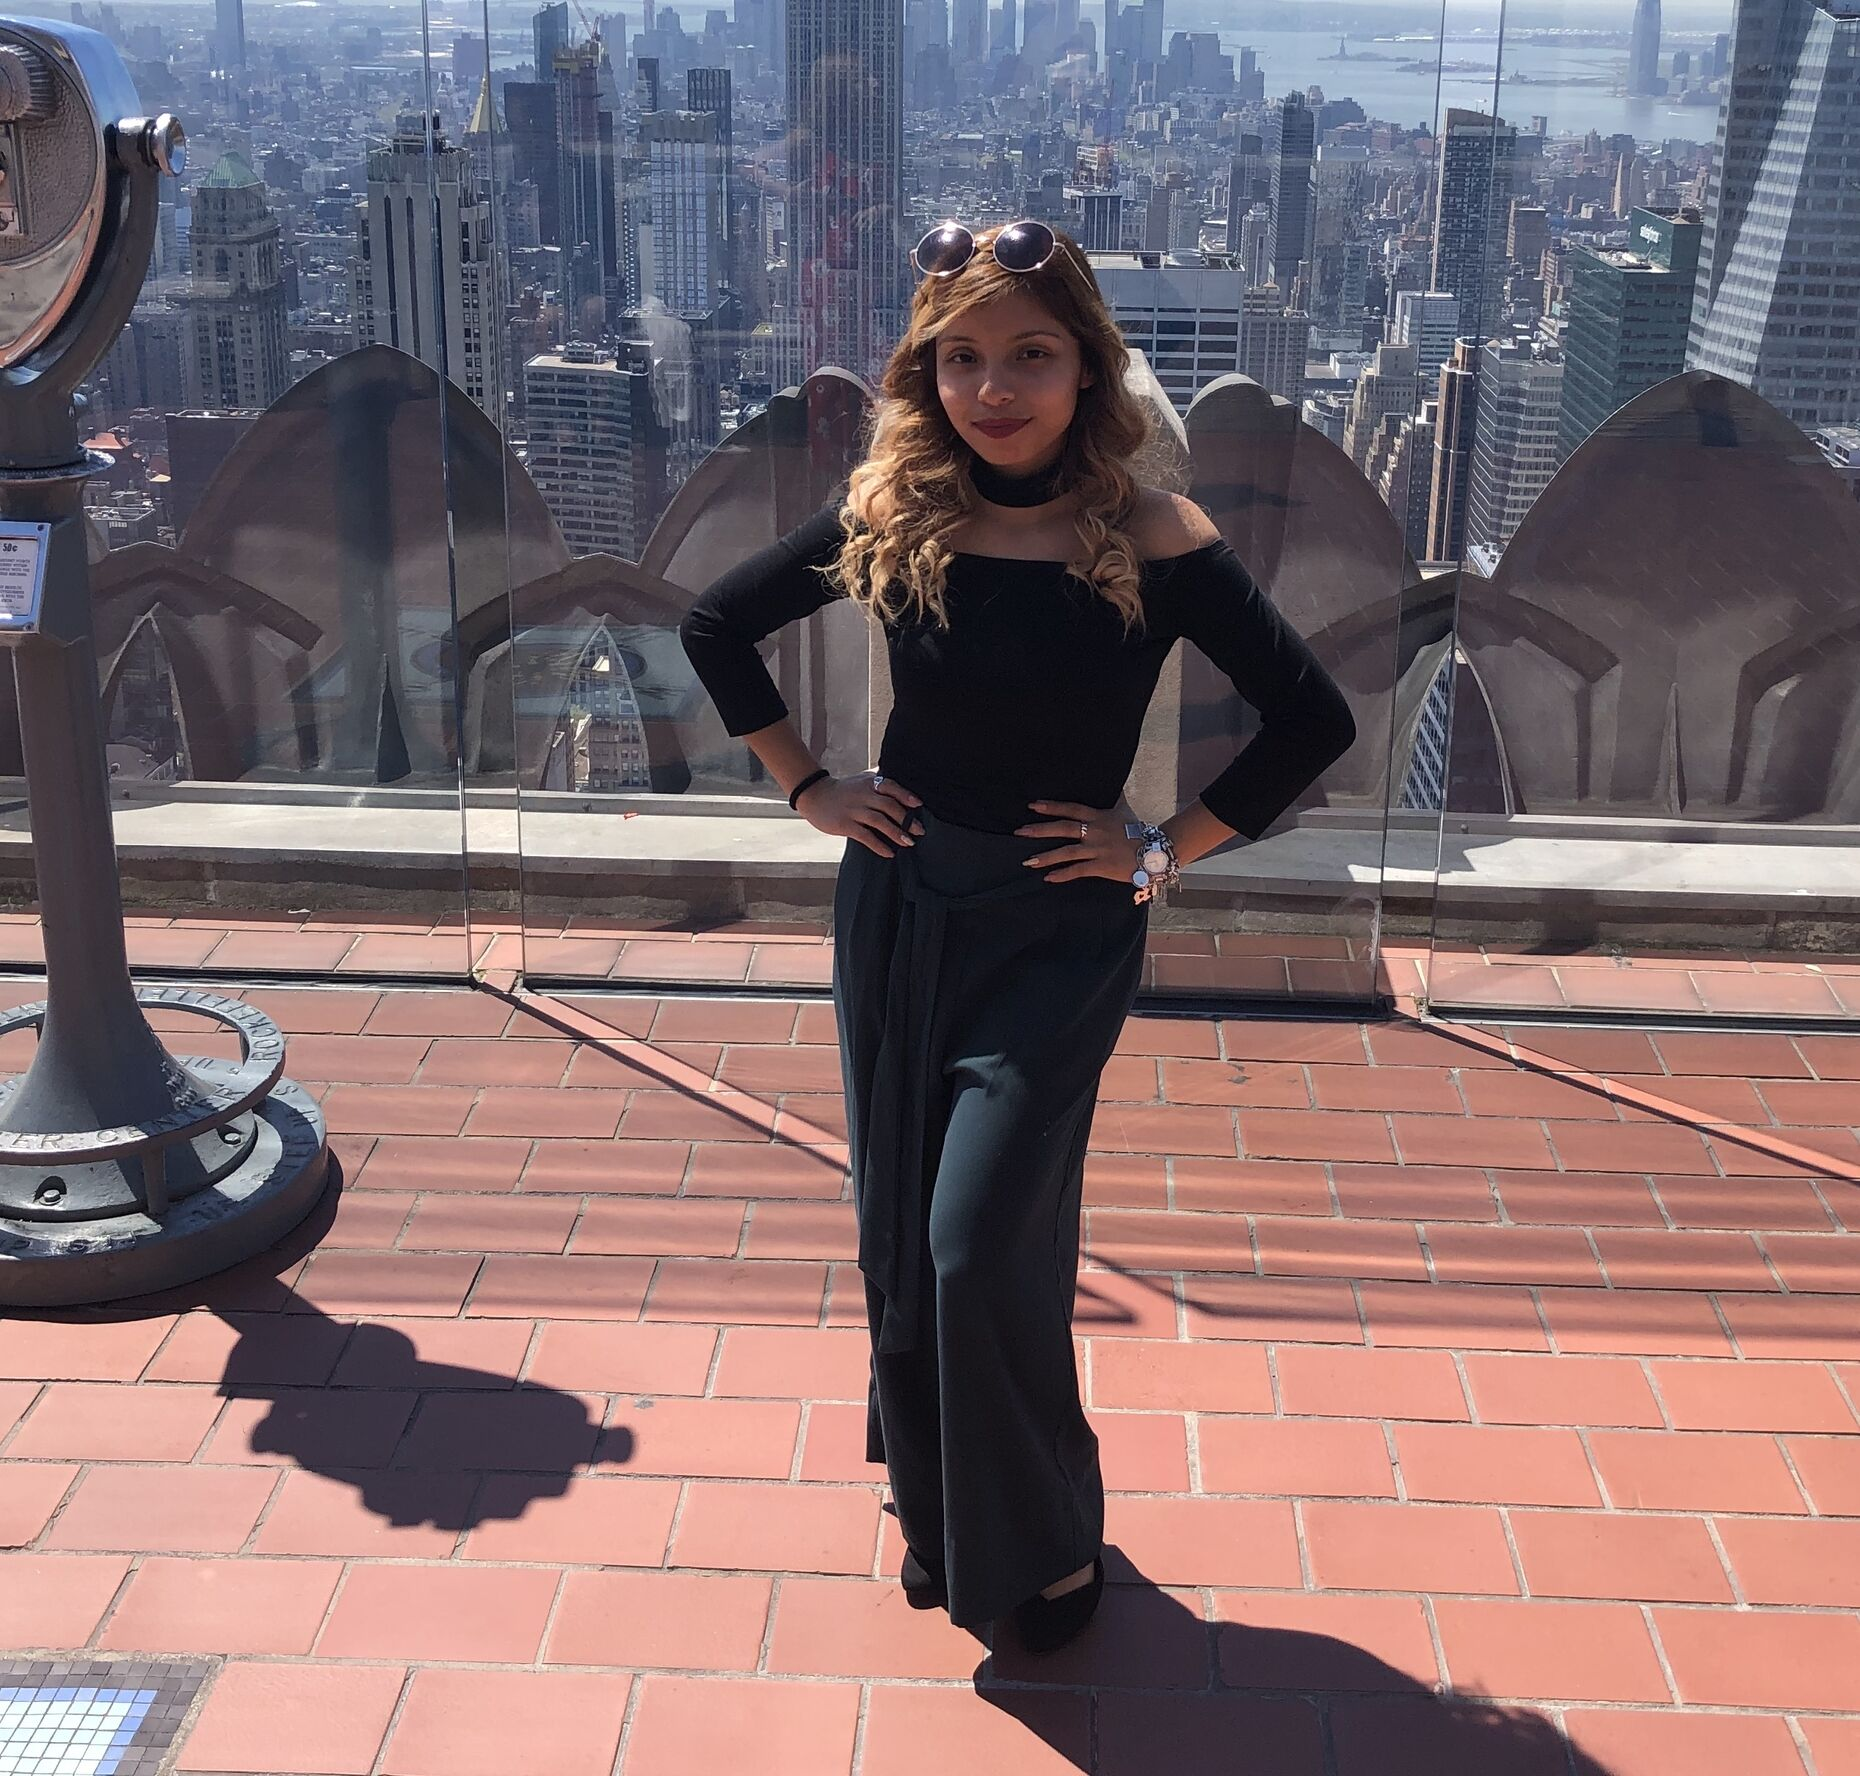 A photo of Maritza standing in front of a city skyline and looking into the camera.